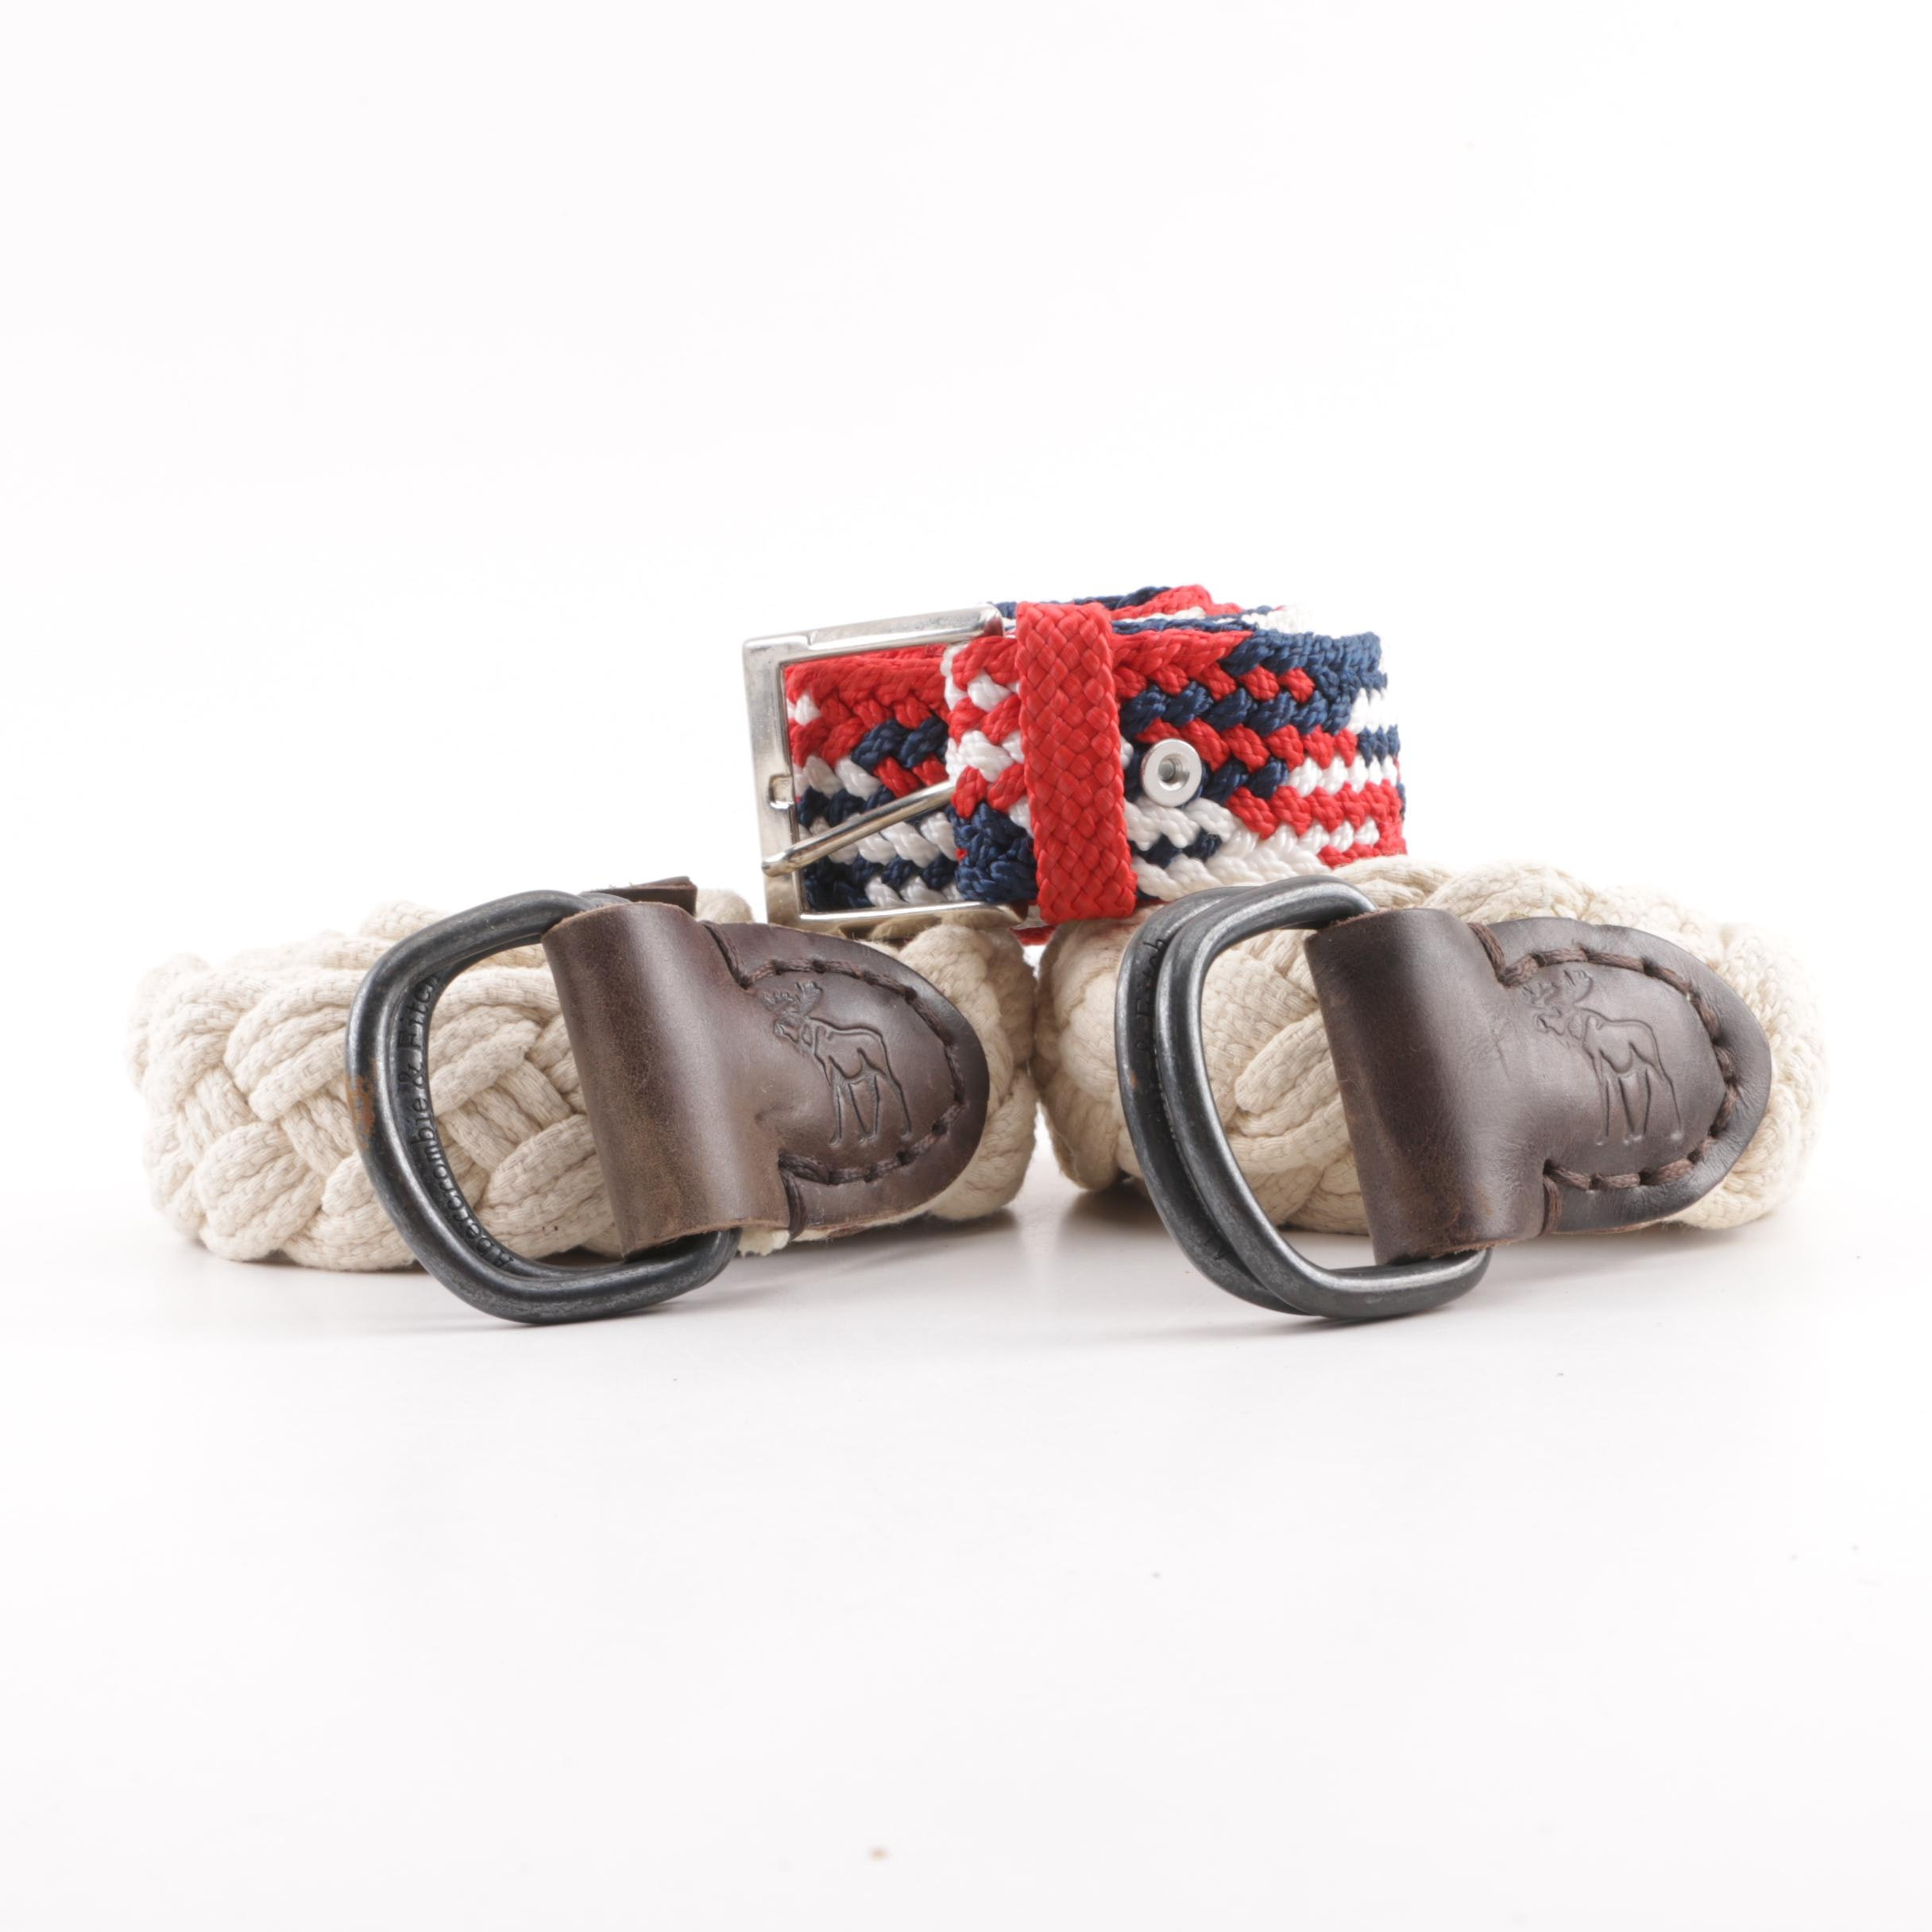 Abercrombie & Fitch Woven Belts